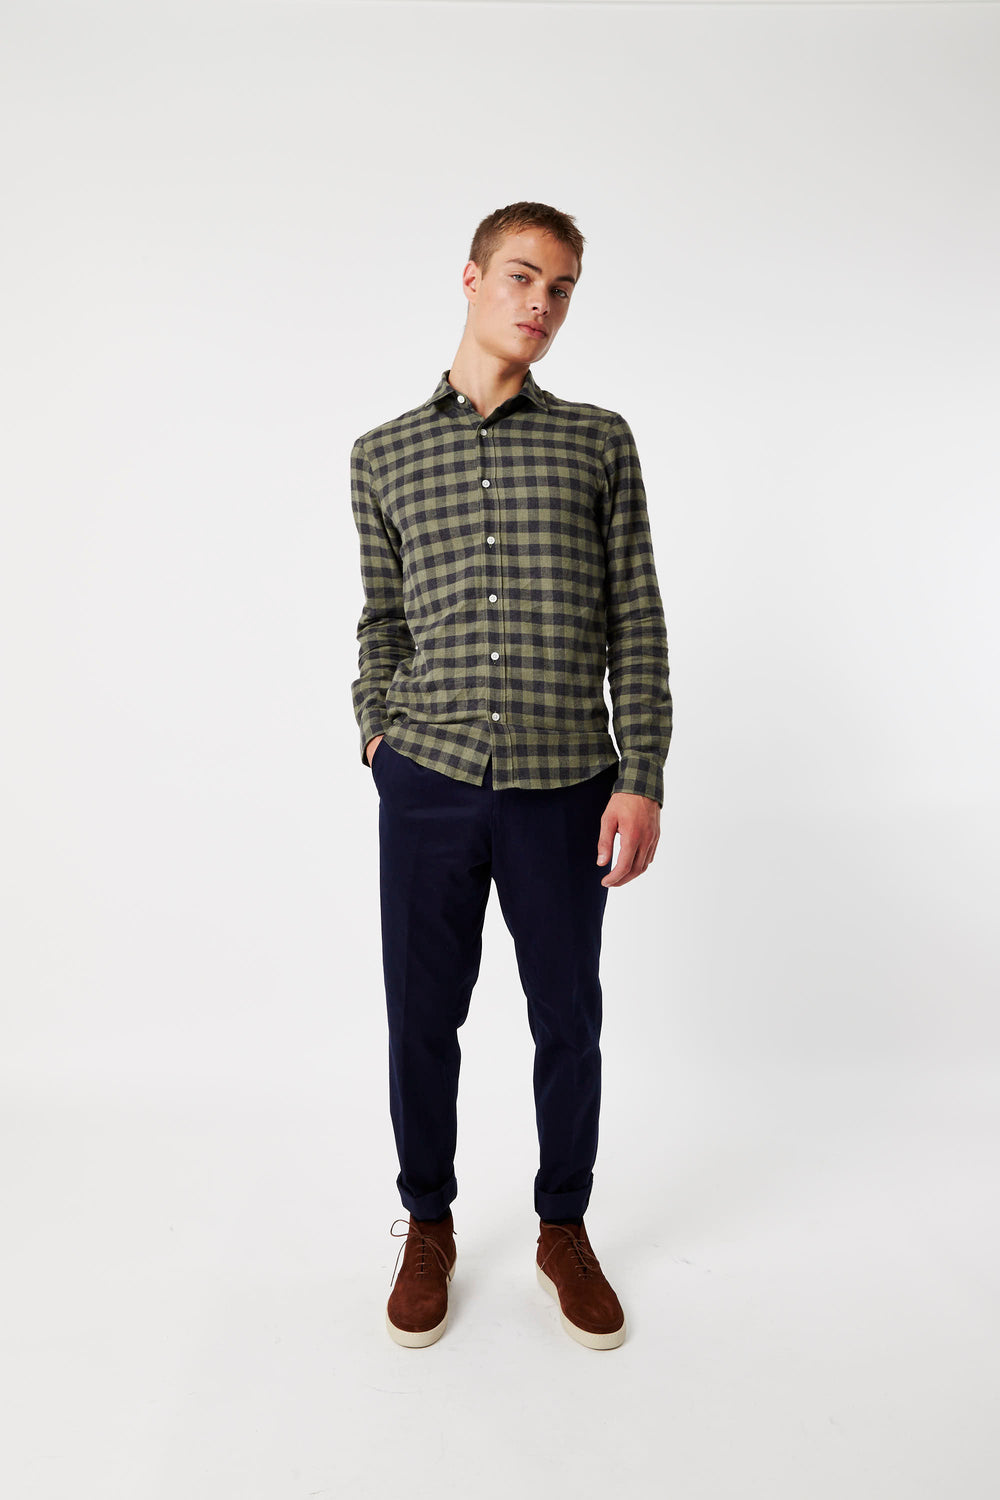 Truman Shirt Green & Black Check